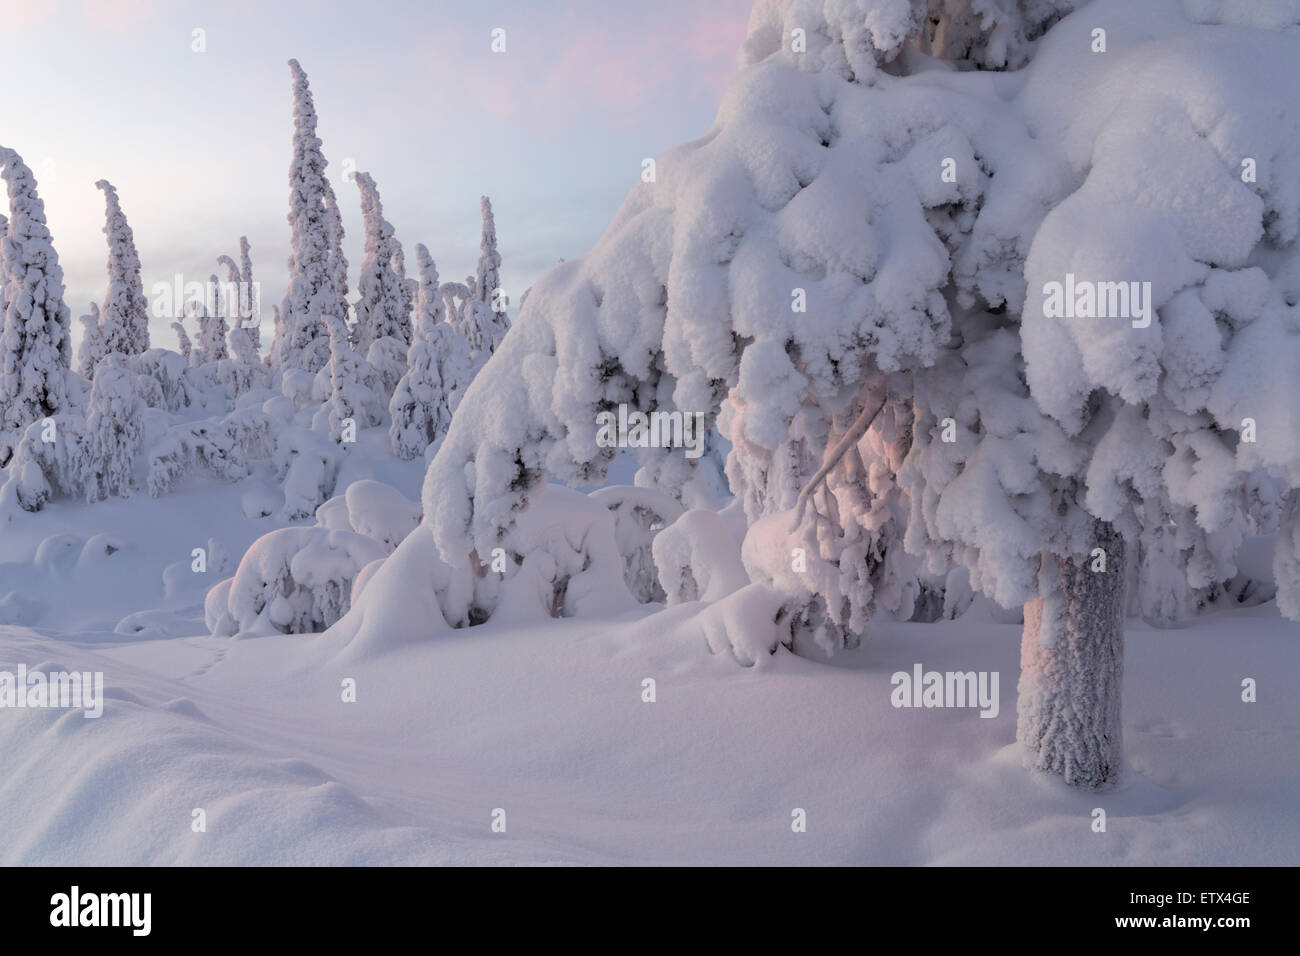 Snow on trees in winter lanscape in Swedish lapland - Stock Image